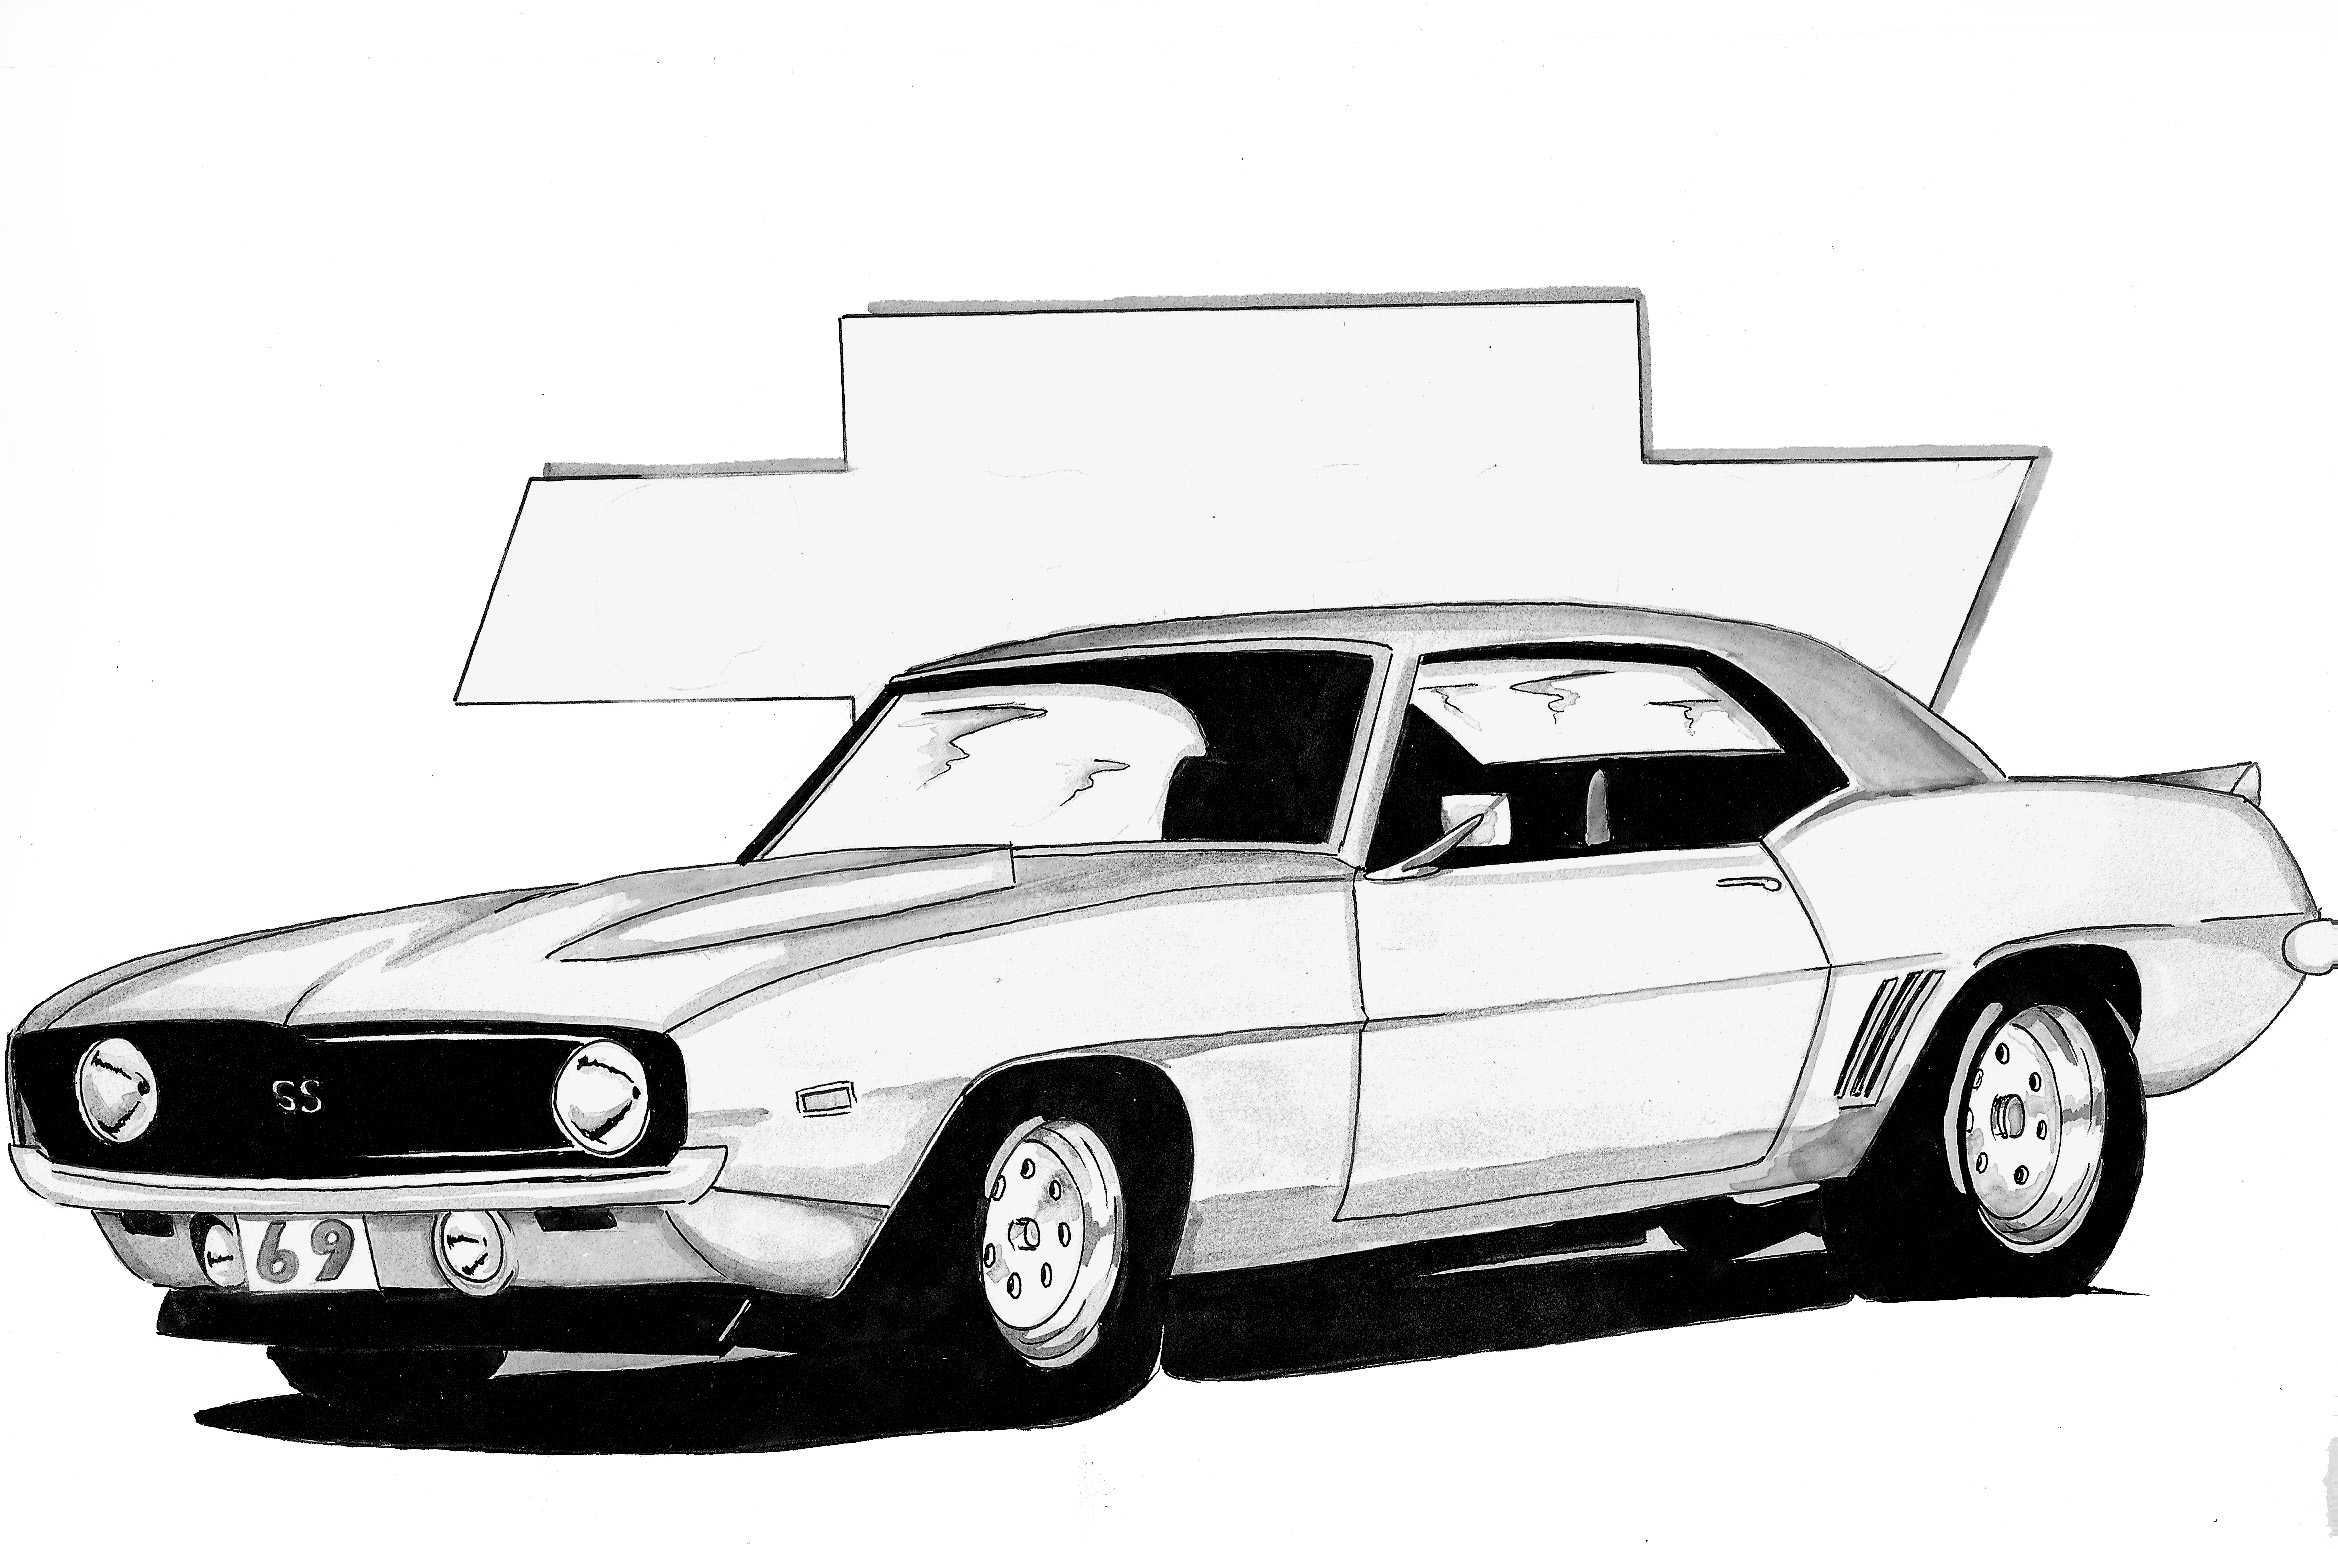 7C 7Ccl jroo me 7Cz3 7CB 7Ck 7Ca 7Ca 7Ca aaa together with 4731 also Index in addition Sea Turtle Tattoos moreover Hot Rod Drawing Tutorial 254417627. on old muscle car drawings pen and ink